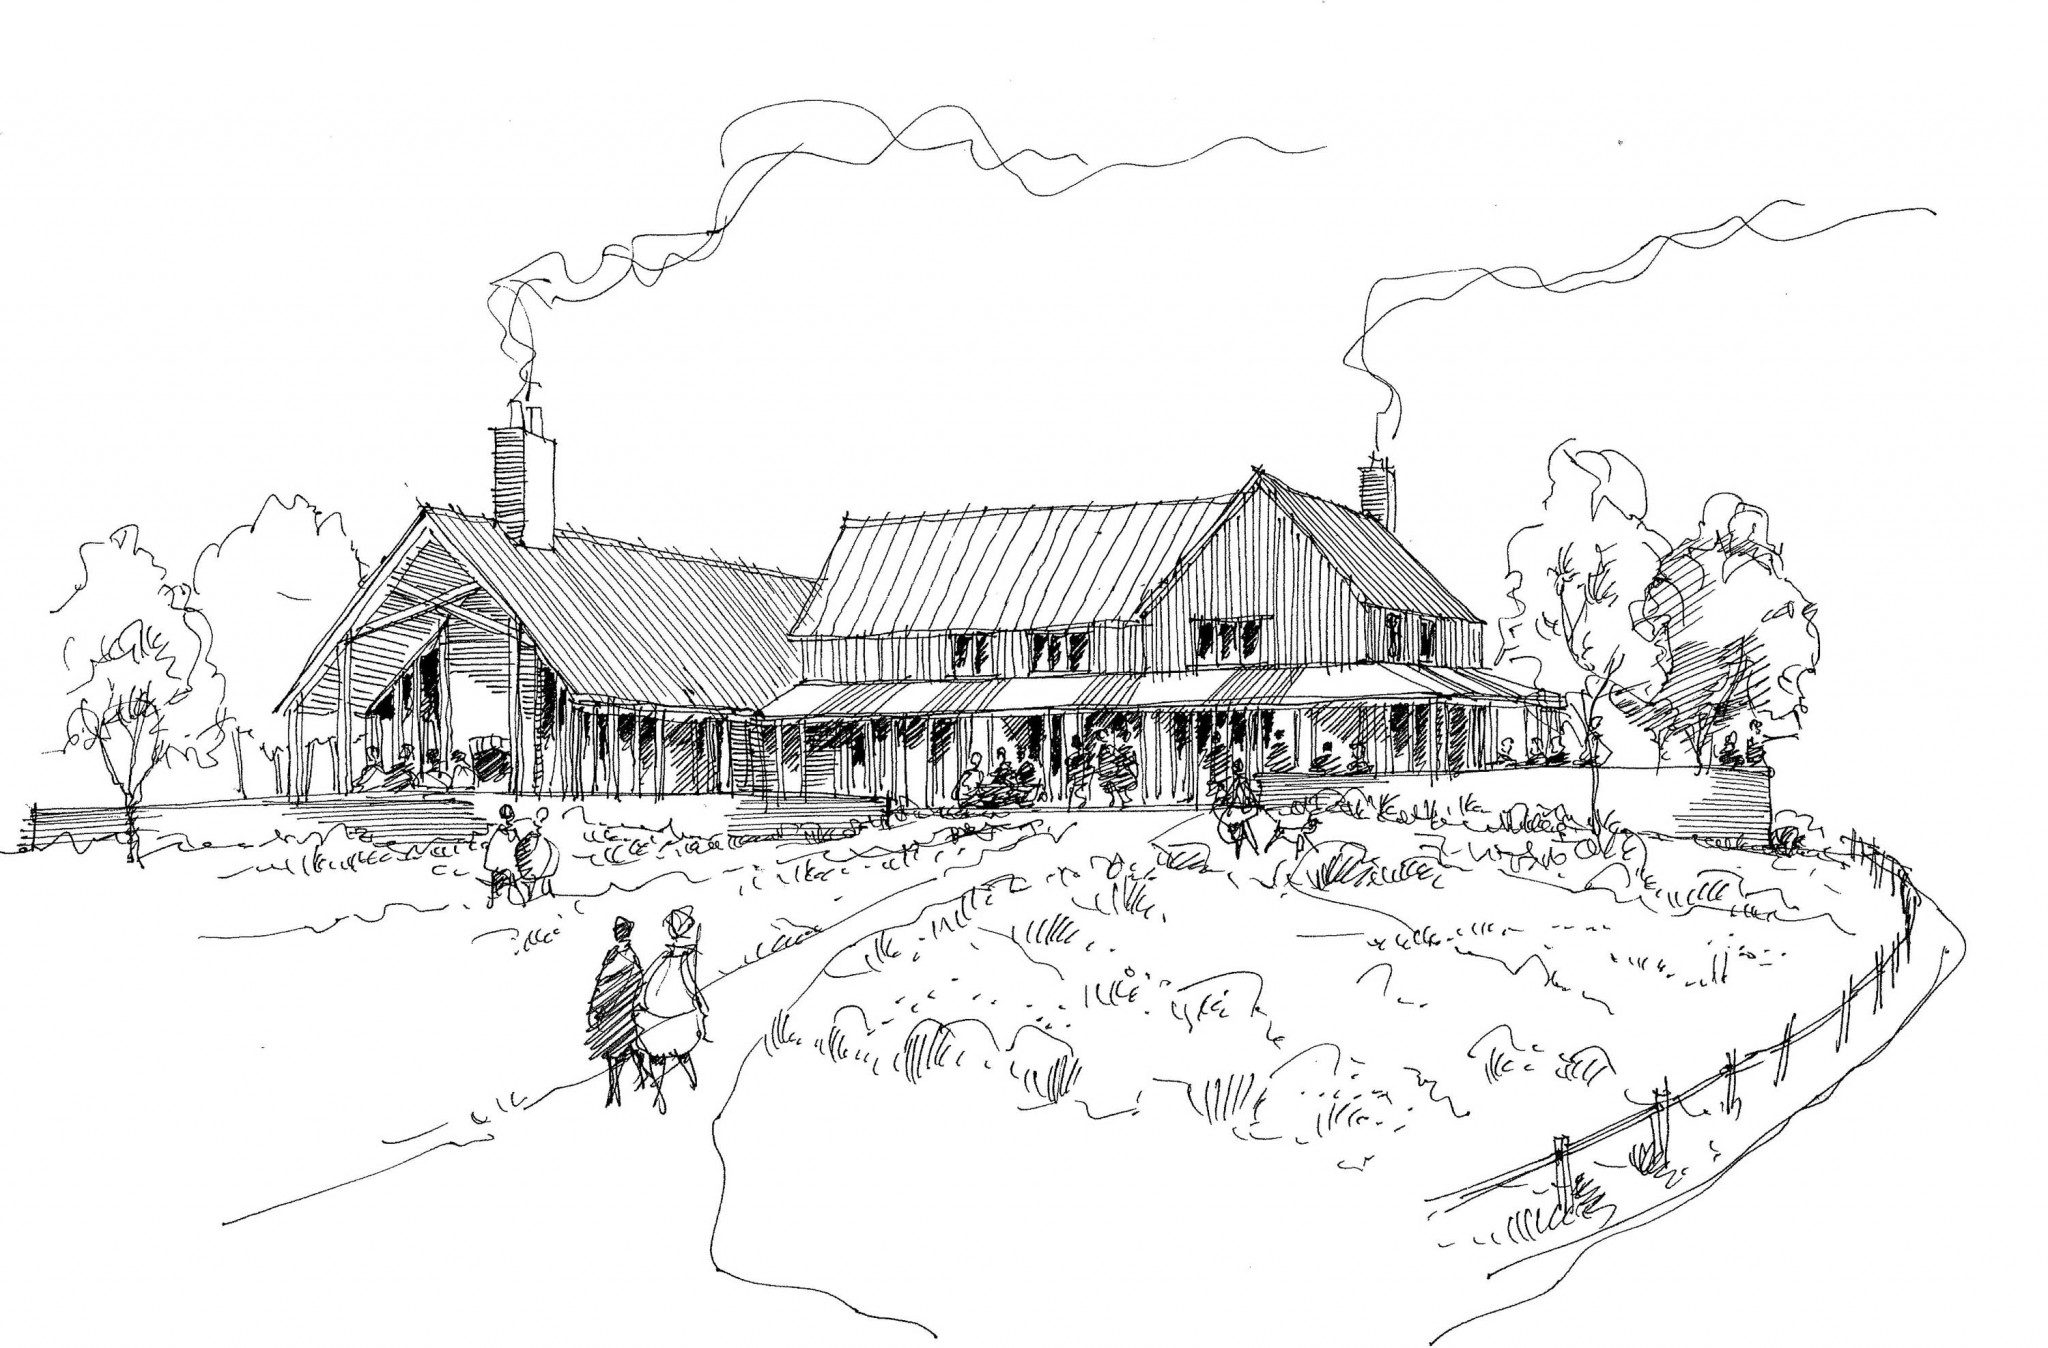 mackenzie wheeler are london based newbuild pub architects and interior designers specializing in country pub design